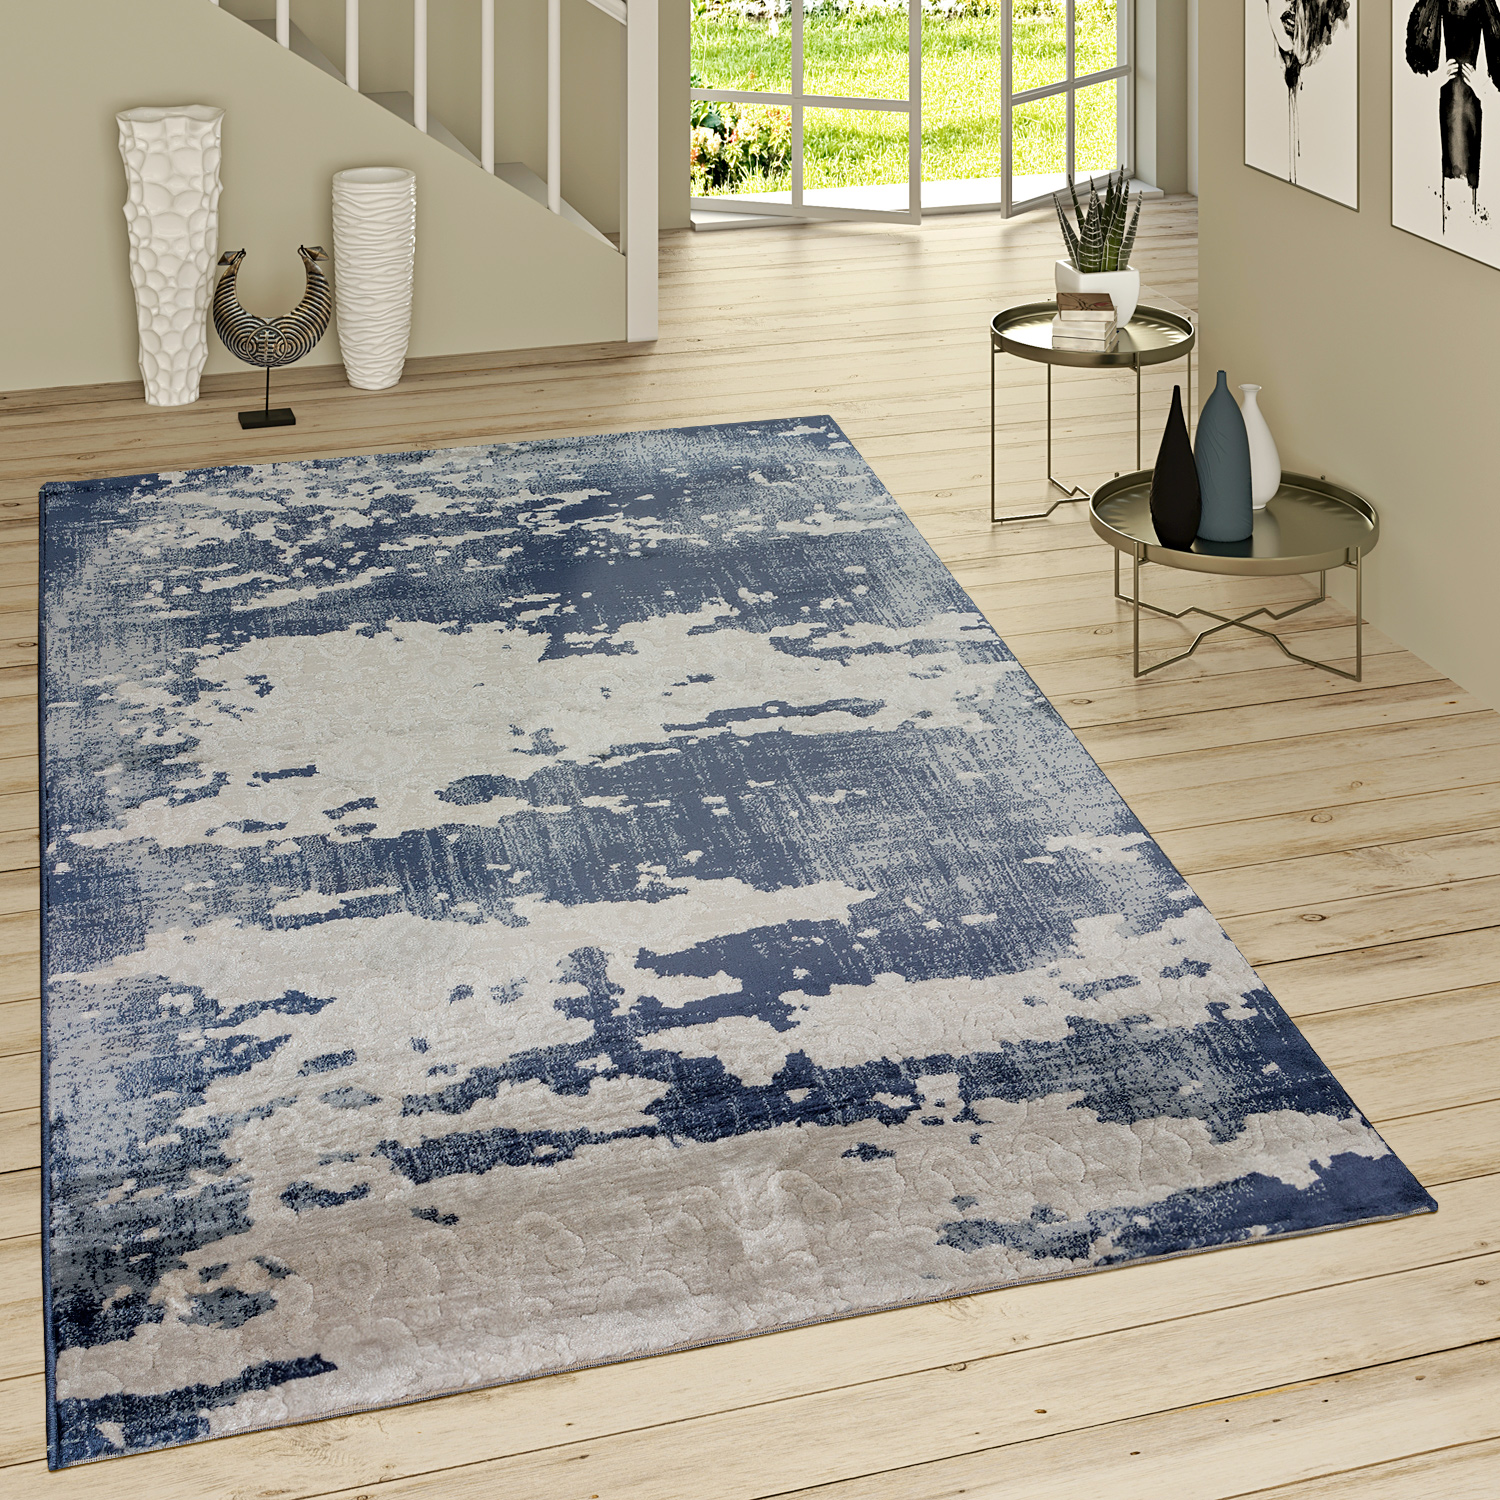 poils ras tapis look us motif ornemental bleu jean moderne gris bleu tapis tapis vintage. Black Bedroom Furniture Sets. Home Design Ideas